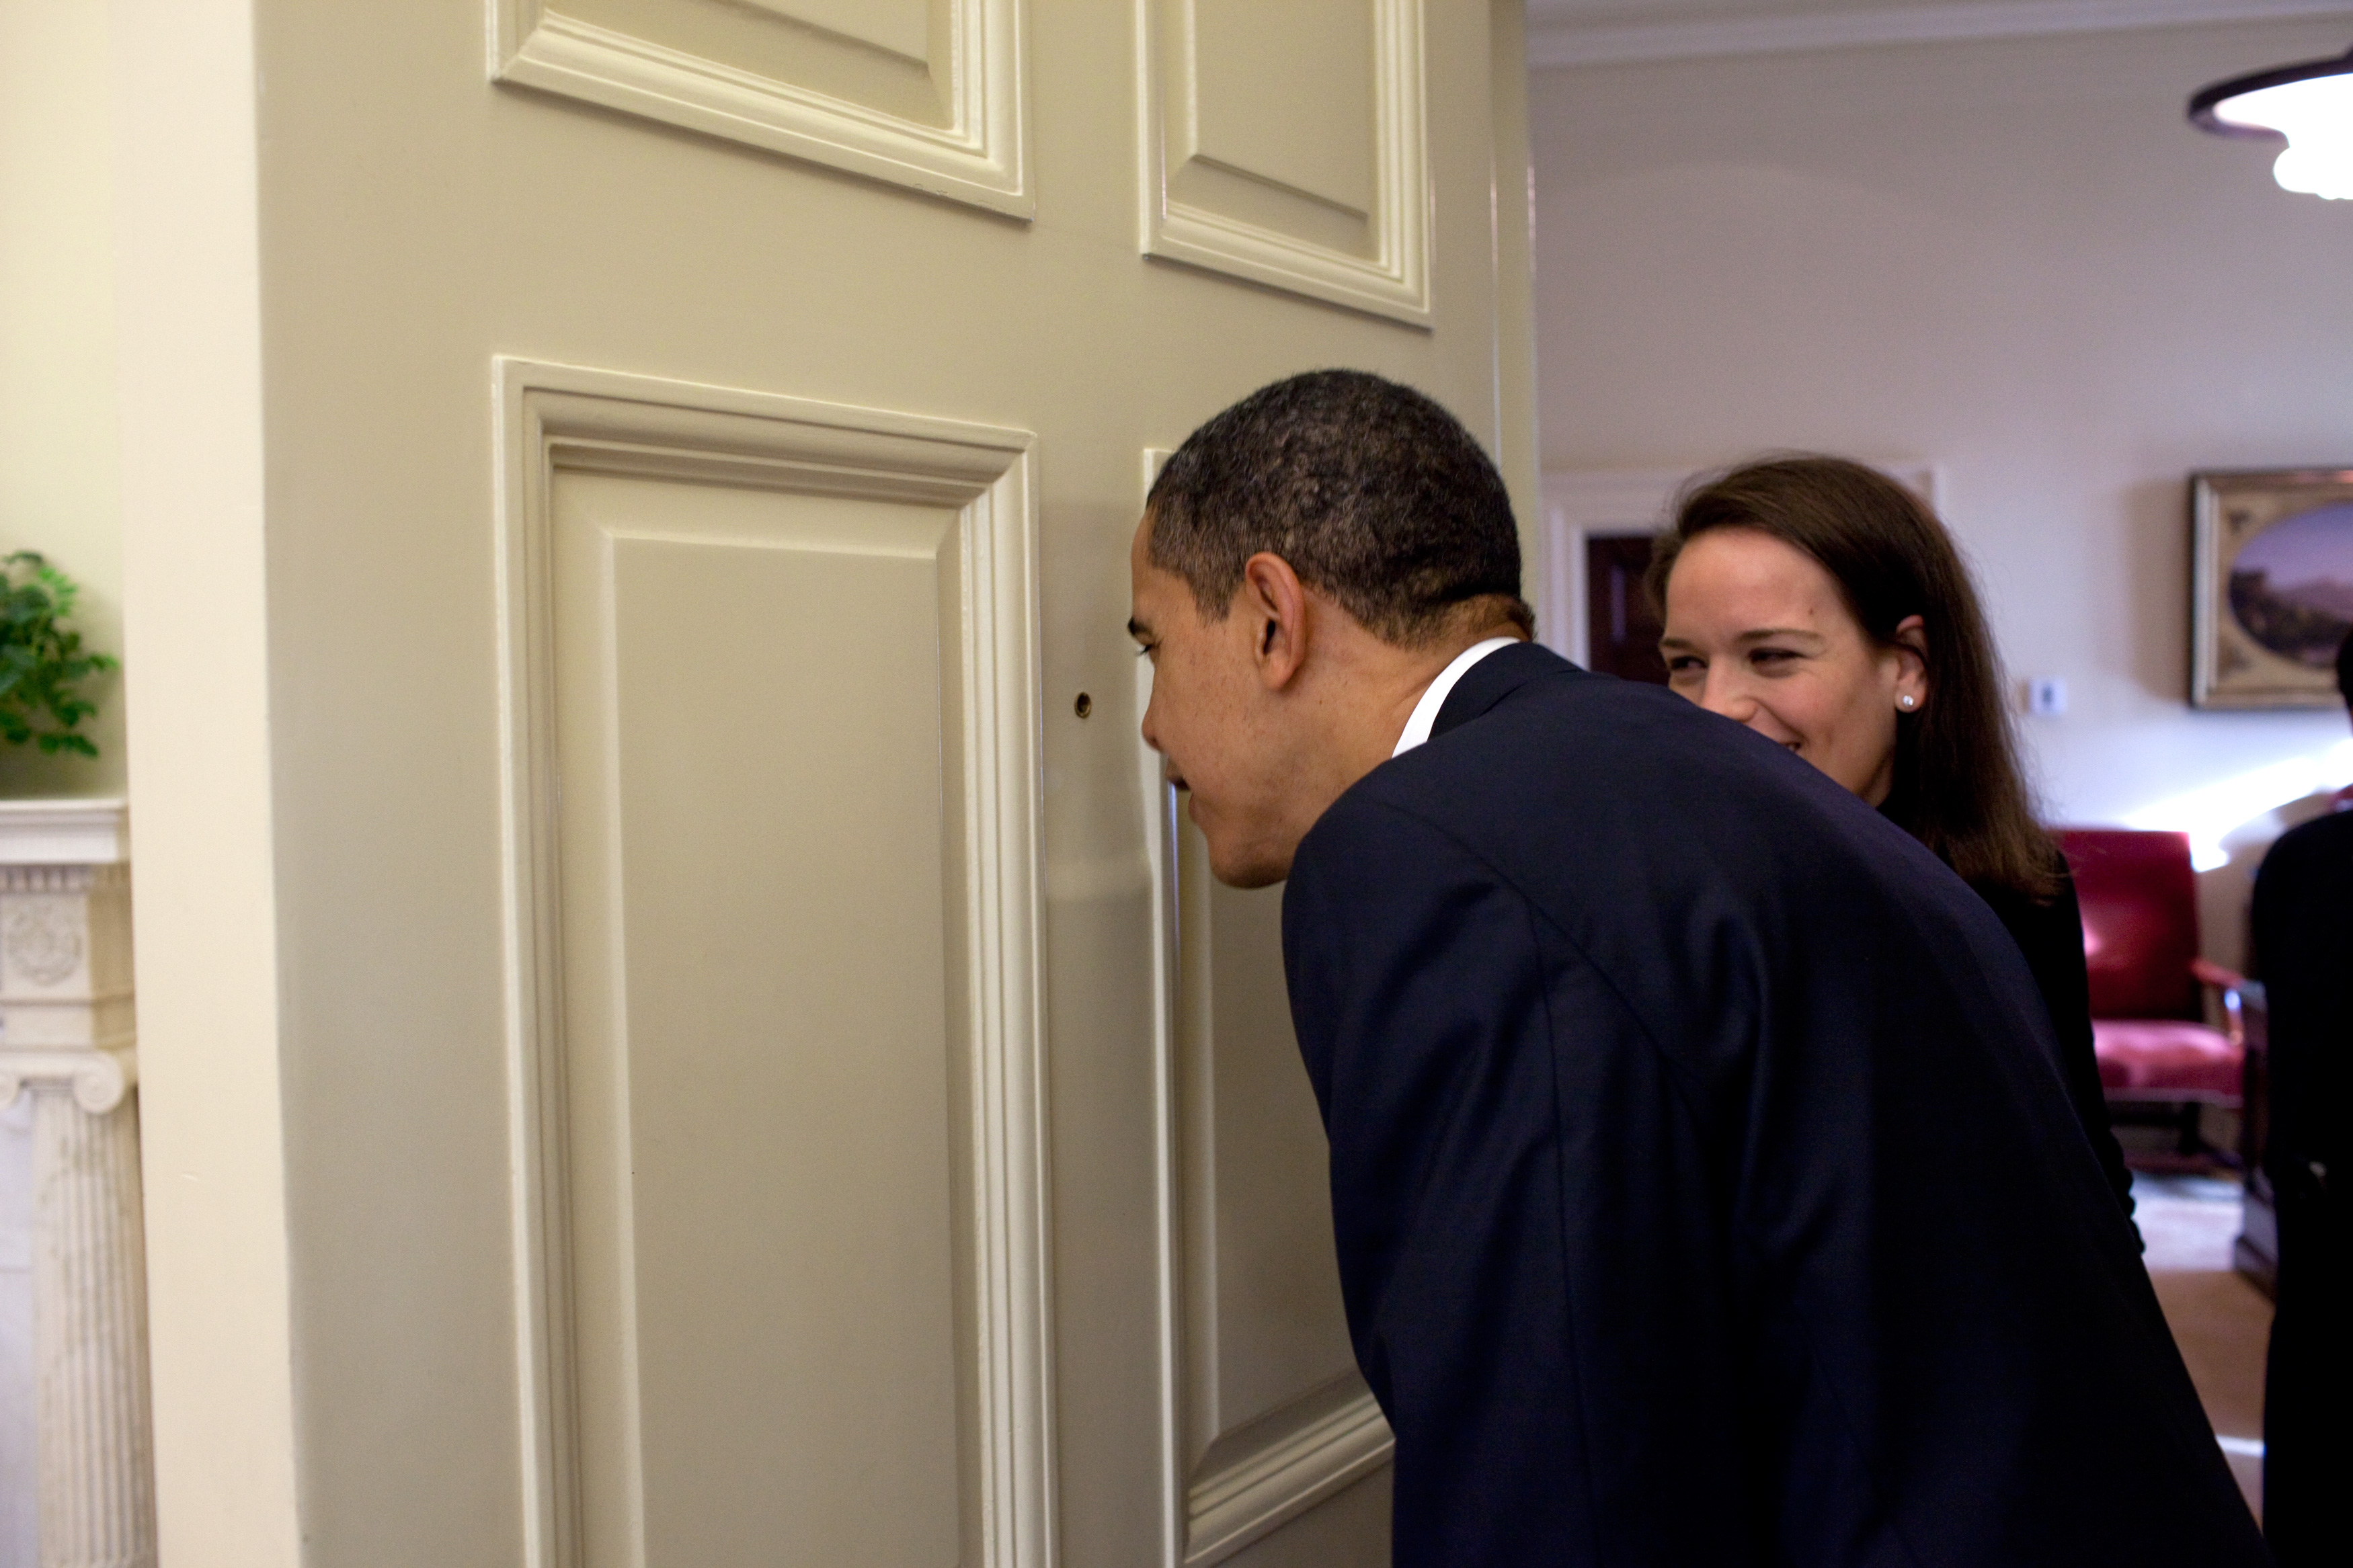 File:Barack Obama Looking Through The Oval Office Door Peephole